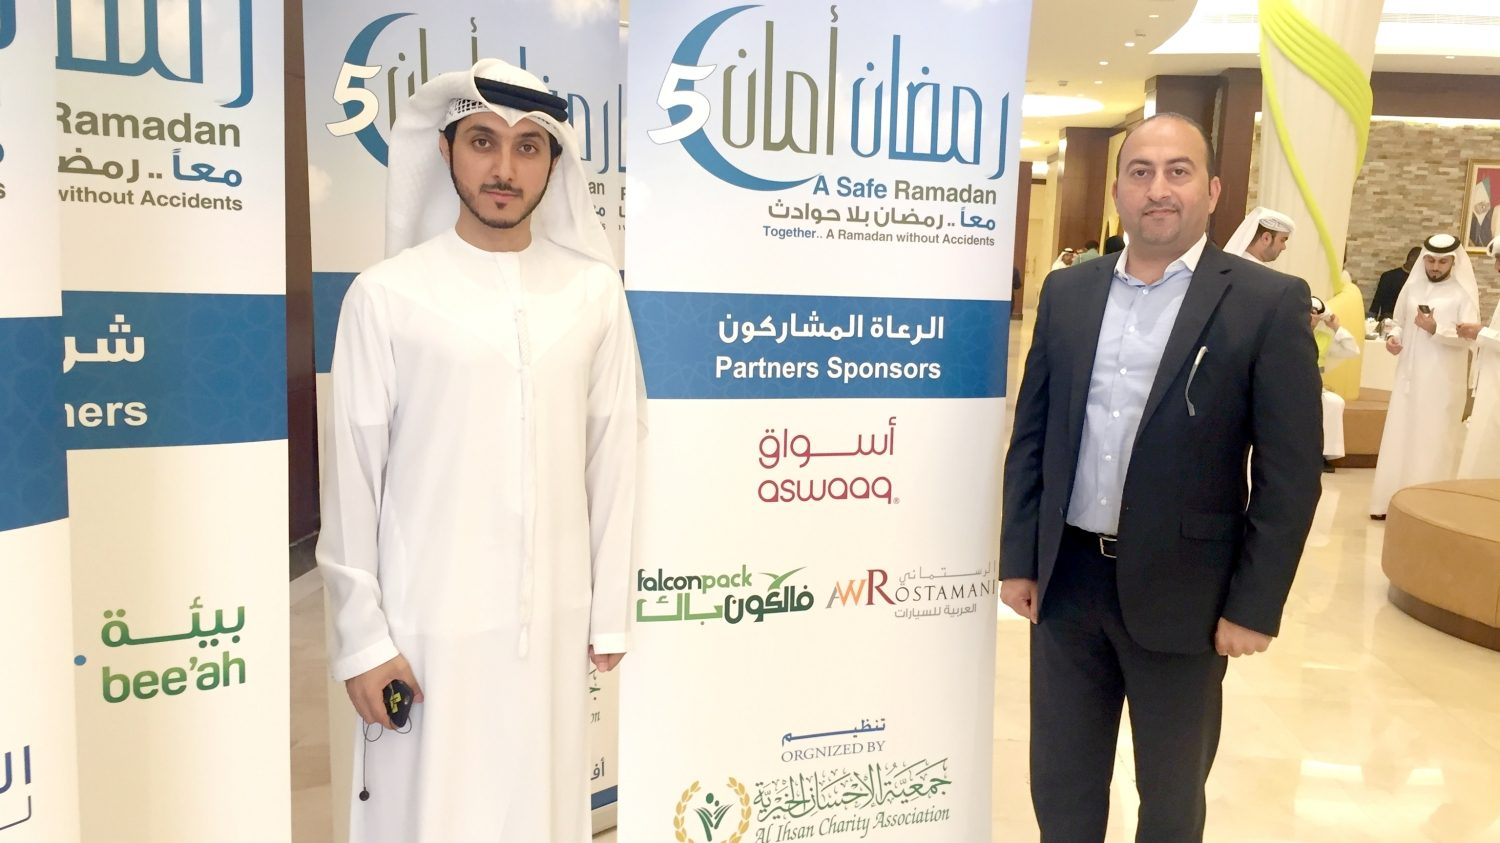 Arabian Automobiles Company and Al Ihsan Charity Association continue their Ramadan partnership